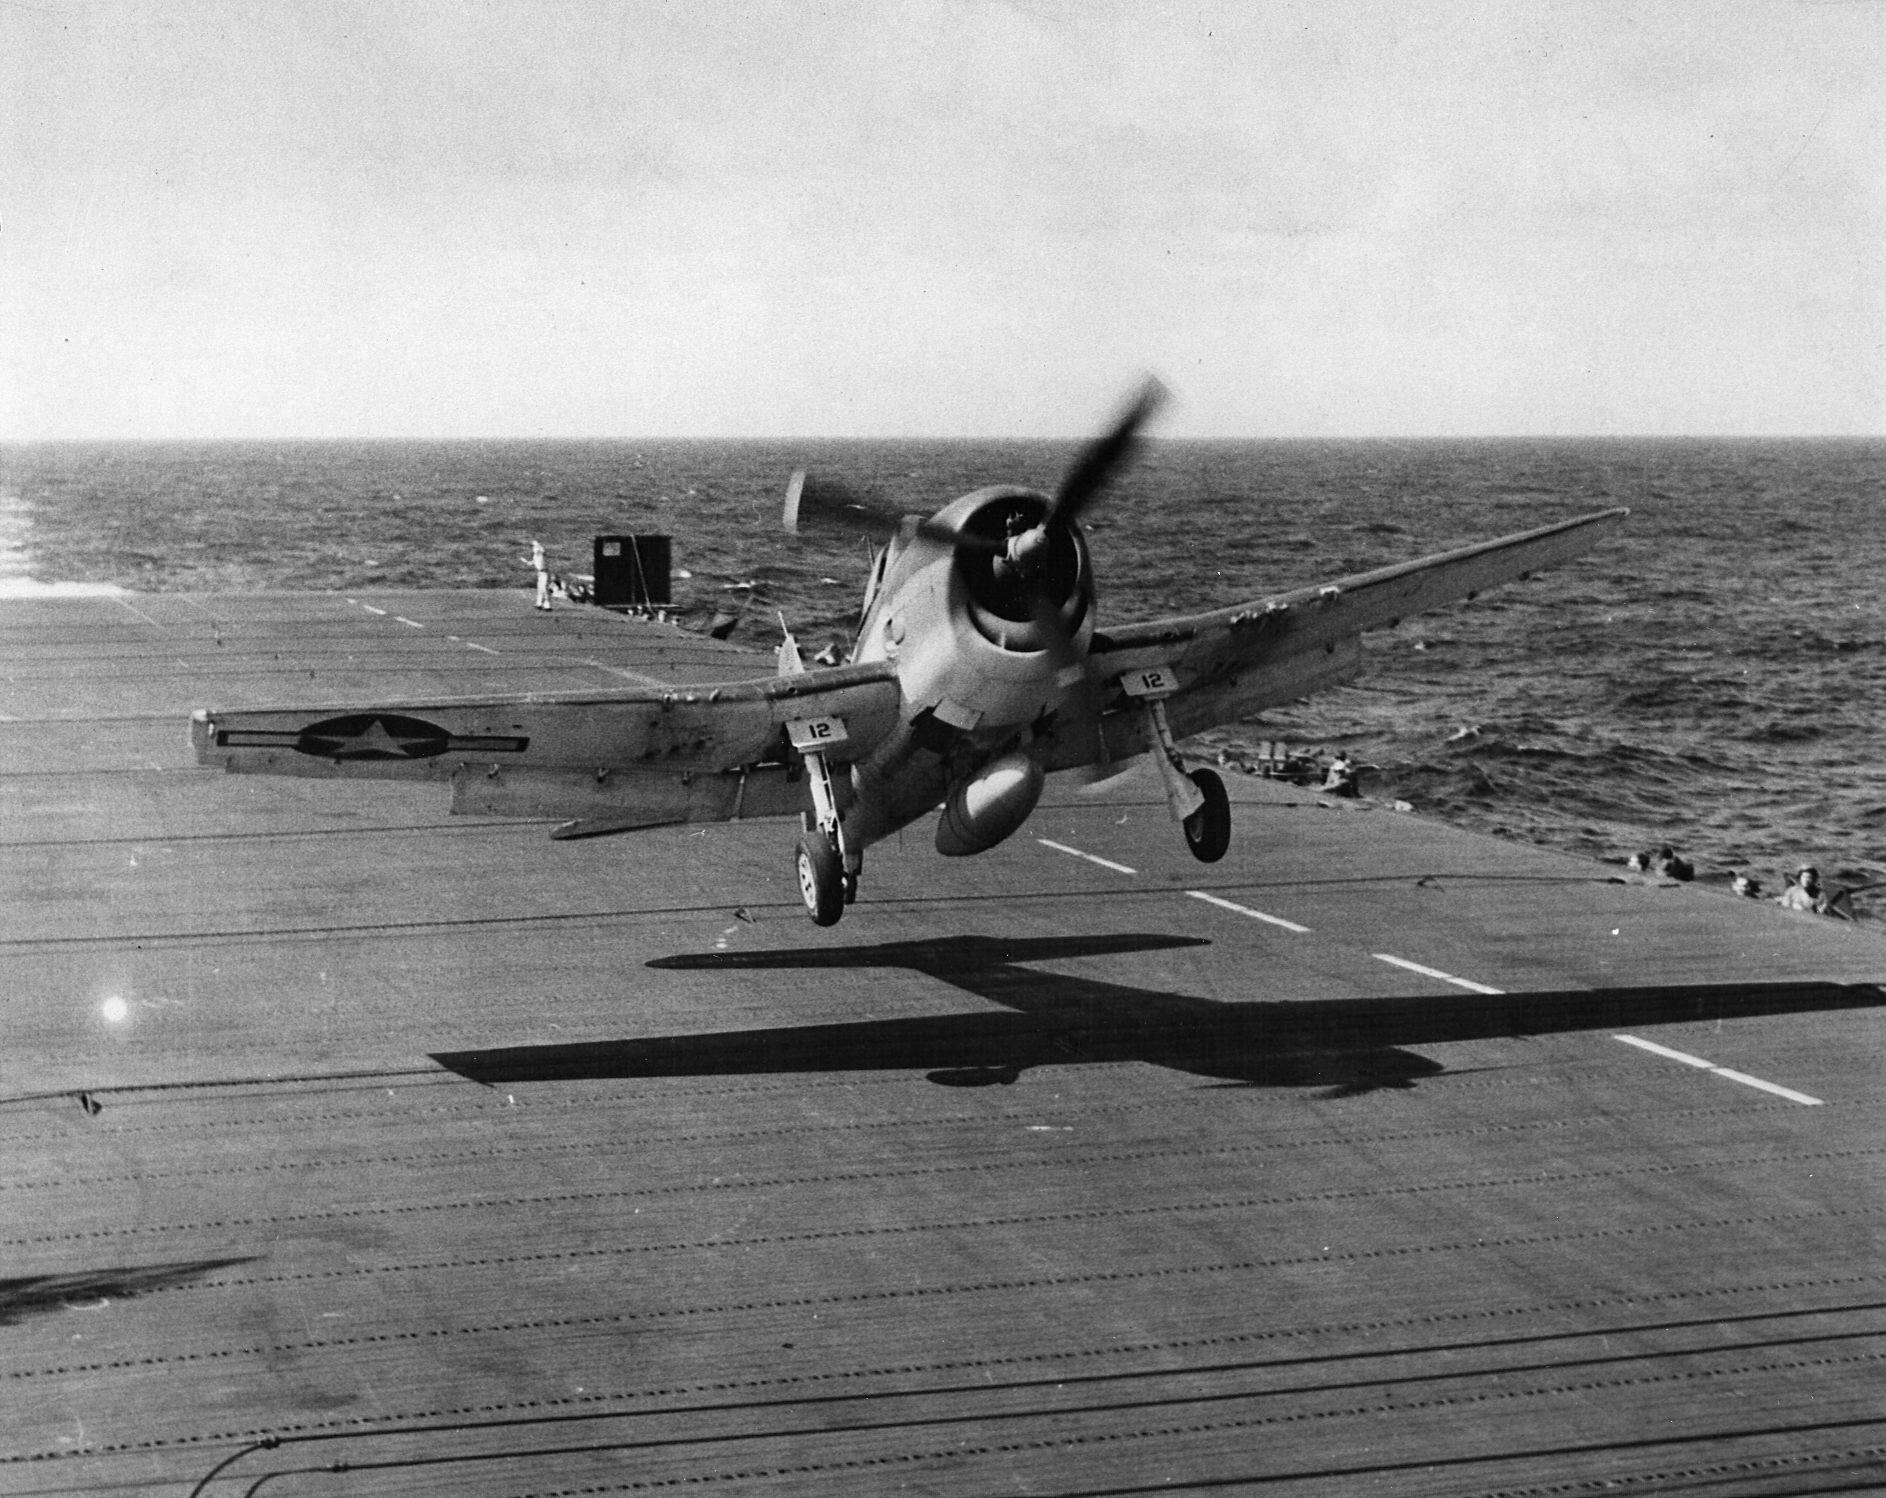 Grumman F6F 3 Hellcat VF 25 White 12 tries to land on CVL 25 USS Cowpens off Hawaii 01